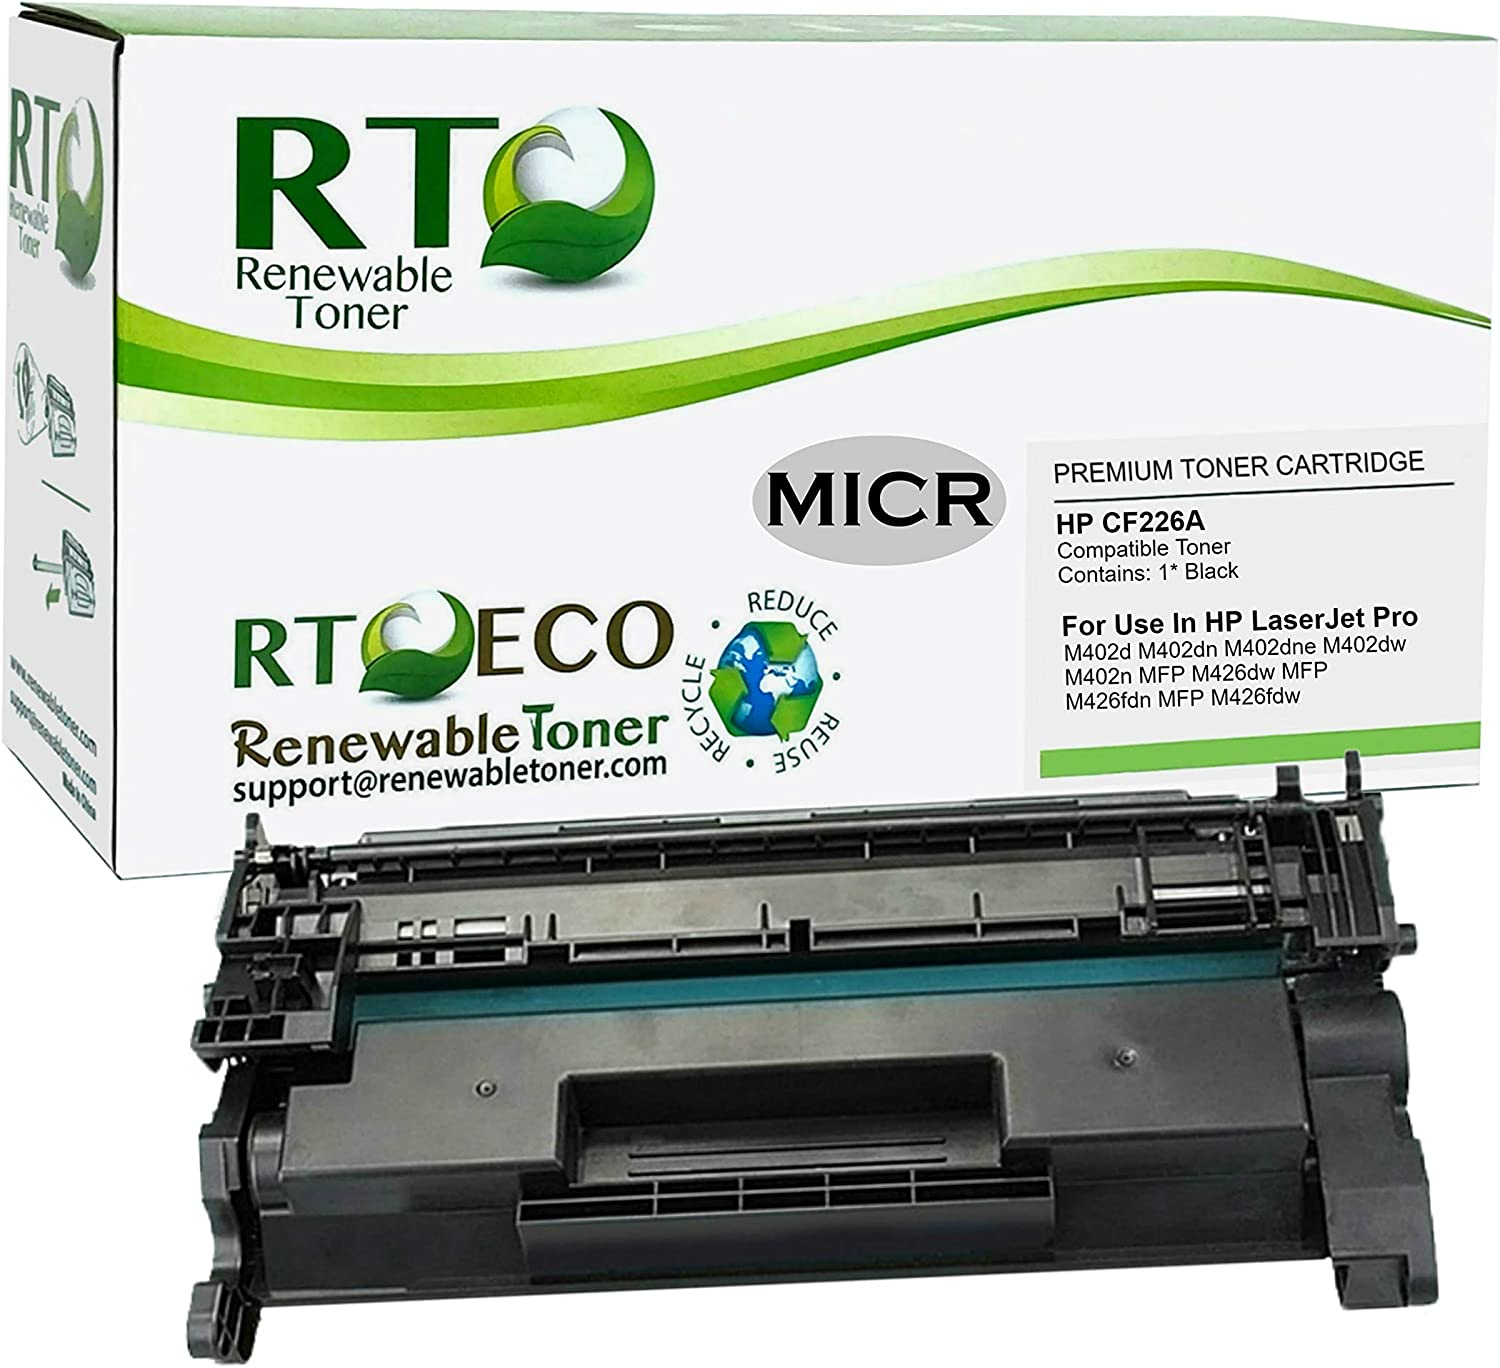 Renewable Toner Compatible MICR Toner Cartridge Replacement for HP 26A CF226A Laserjet Pro M402 M426